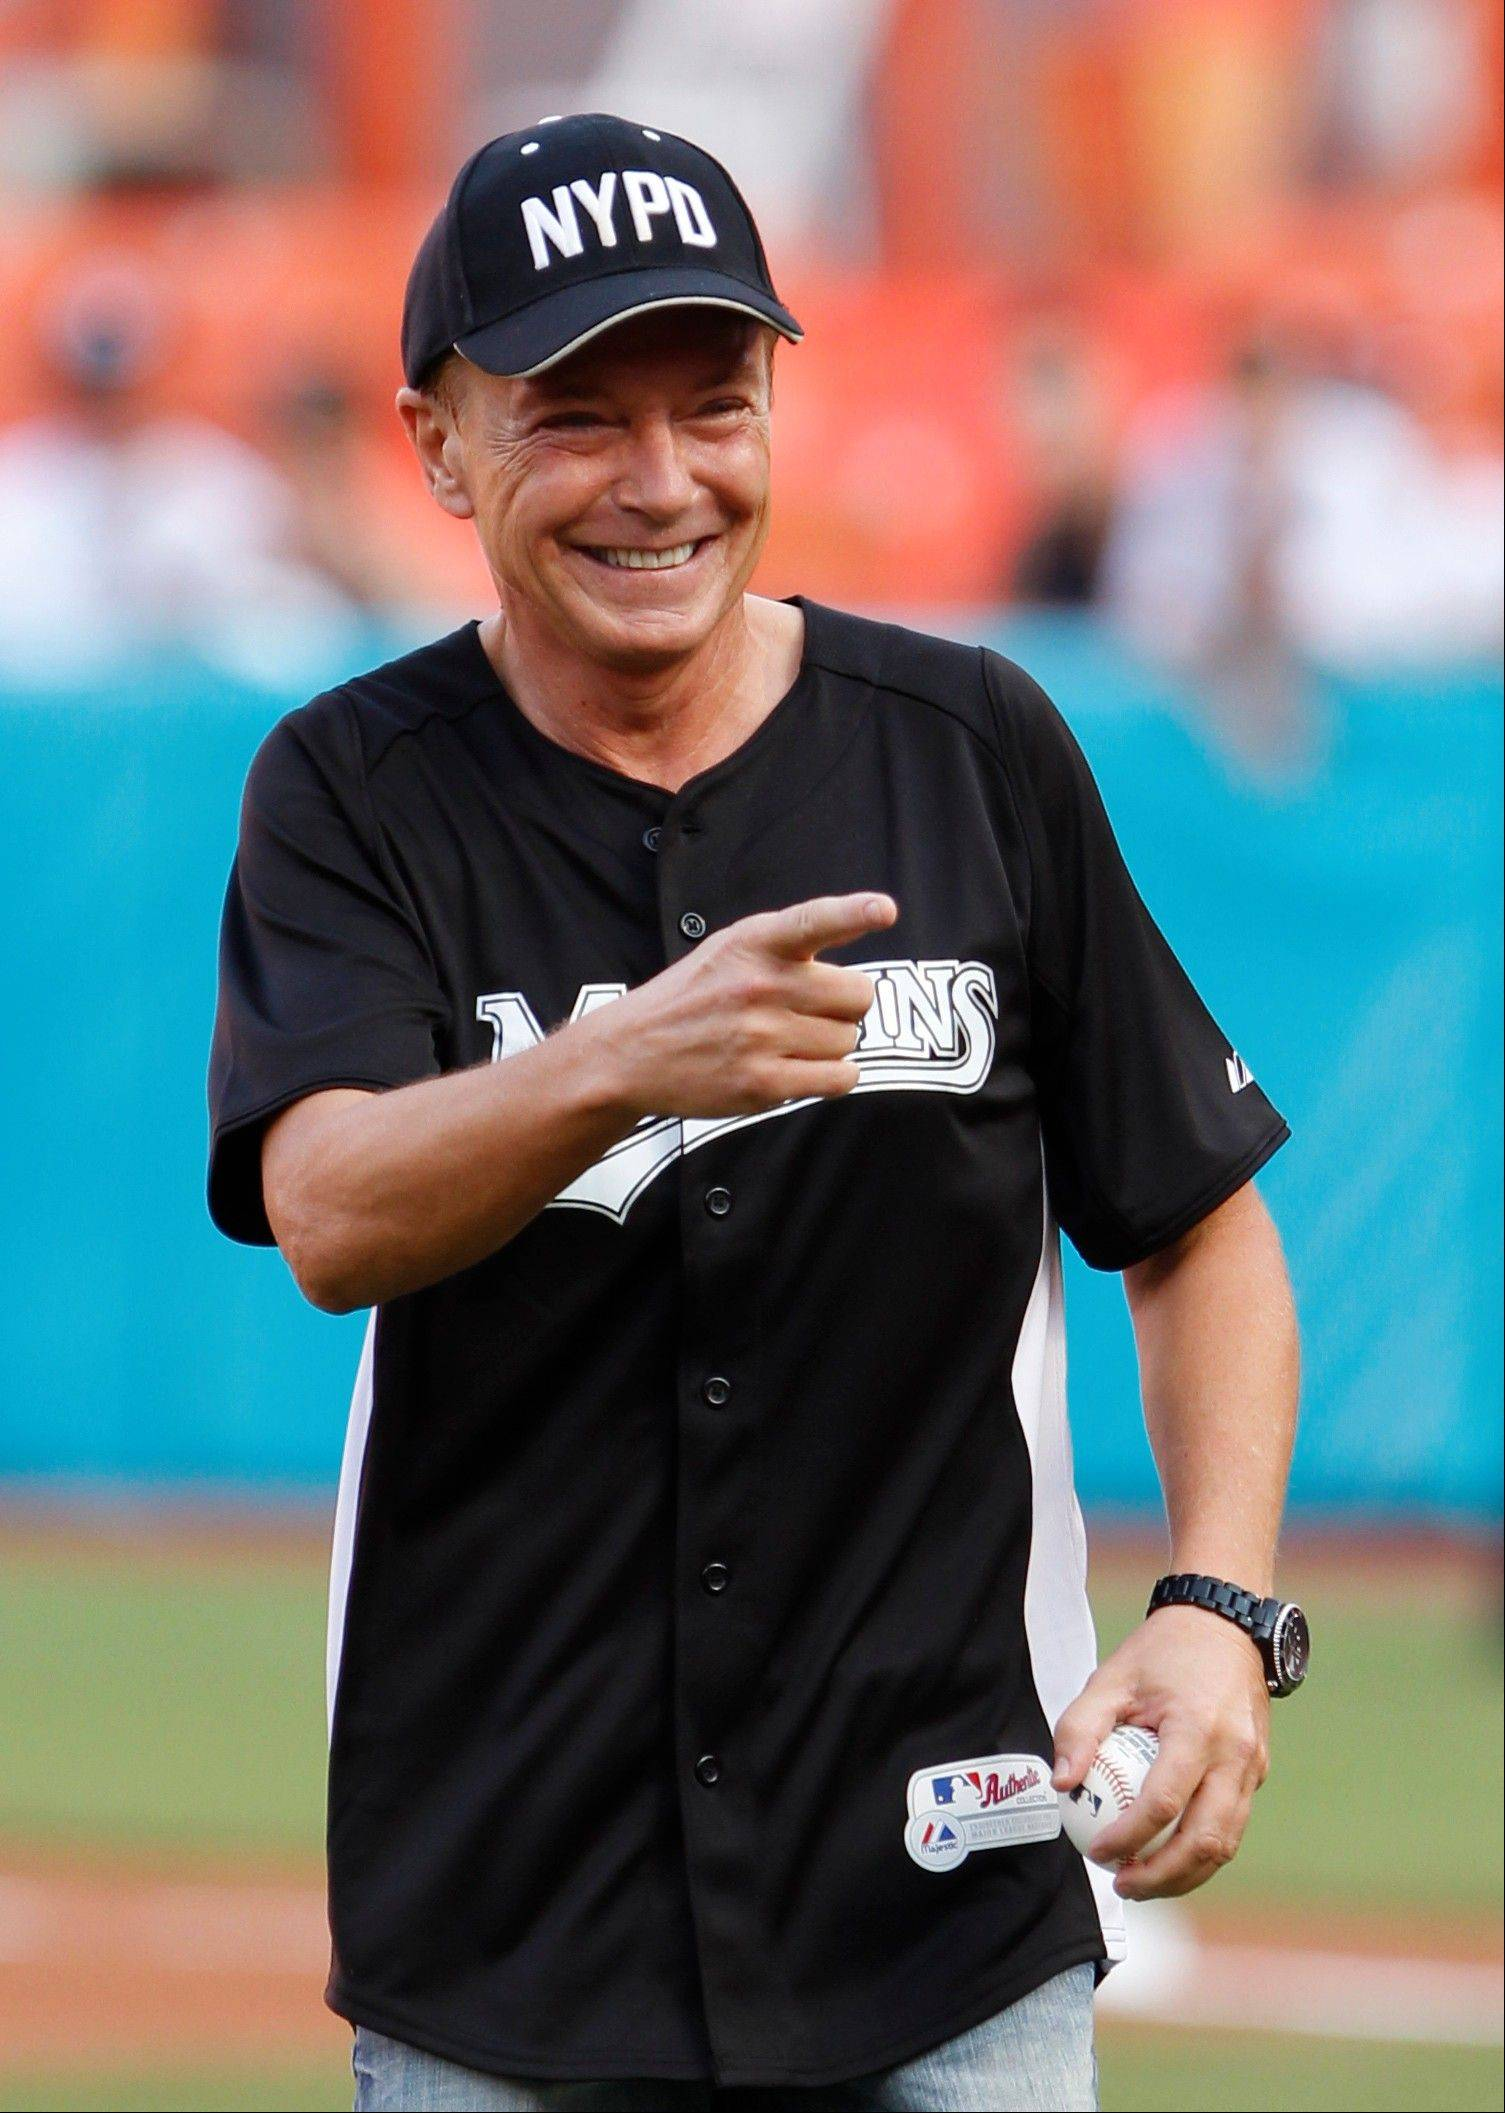 This July 9, 2011, file photo shows actor David Cassidy after throwing out a ceremonial first pitch before a baseball game between the Florida Marlins and the Houston Astros, in Miami. Cassidy was arrested Friday in Southern California on suspicion of drunken driving.